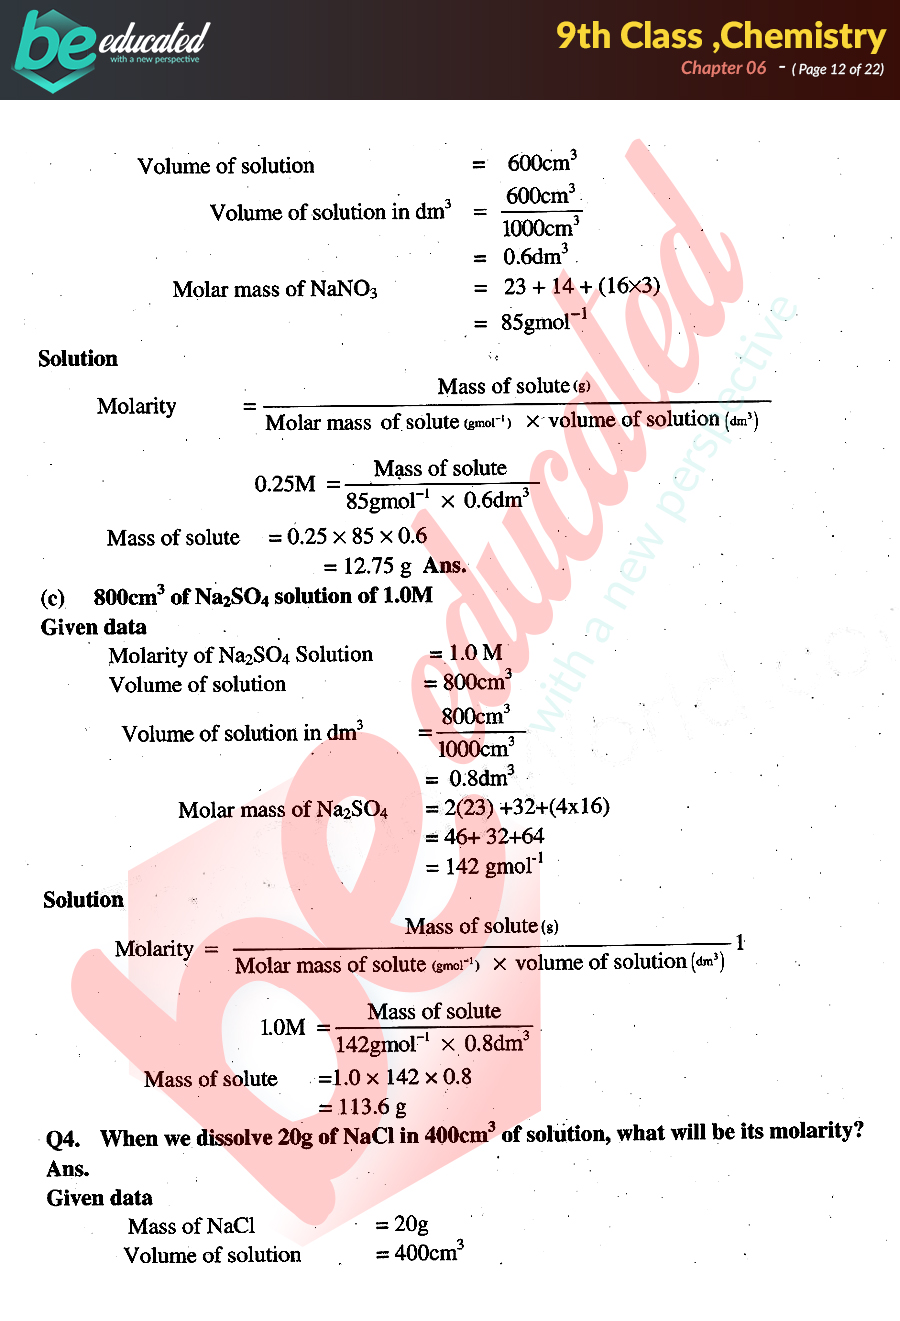 Chapter 6 Chemistry 9th Class Notes - Matric Part 1 Notes